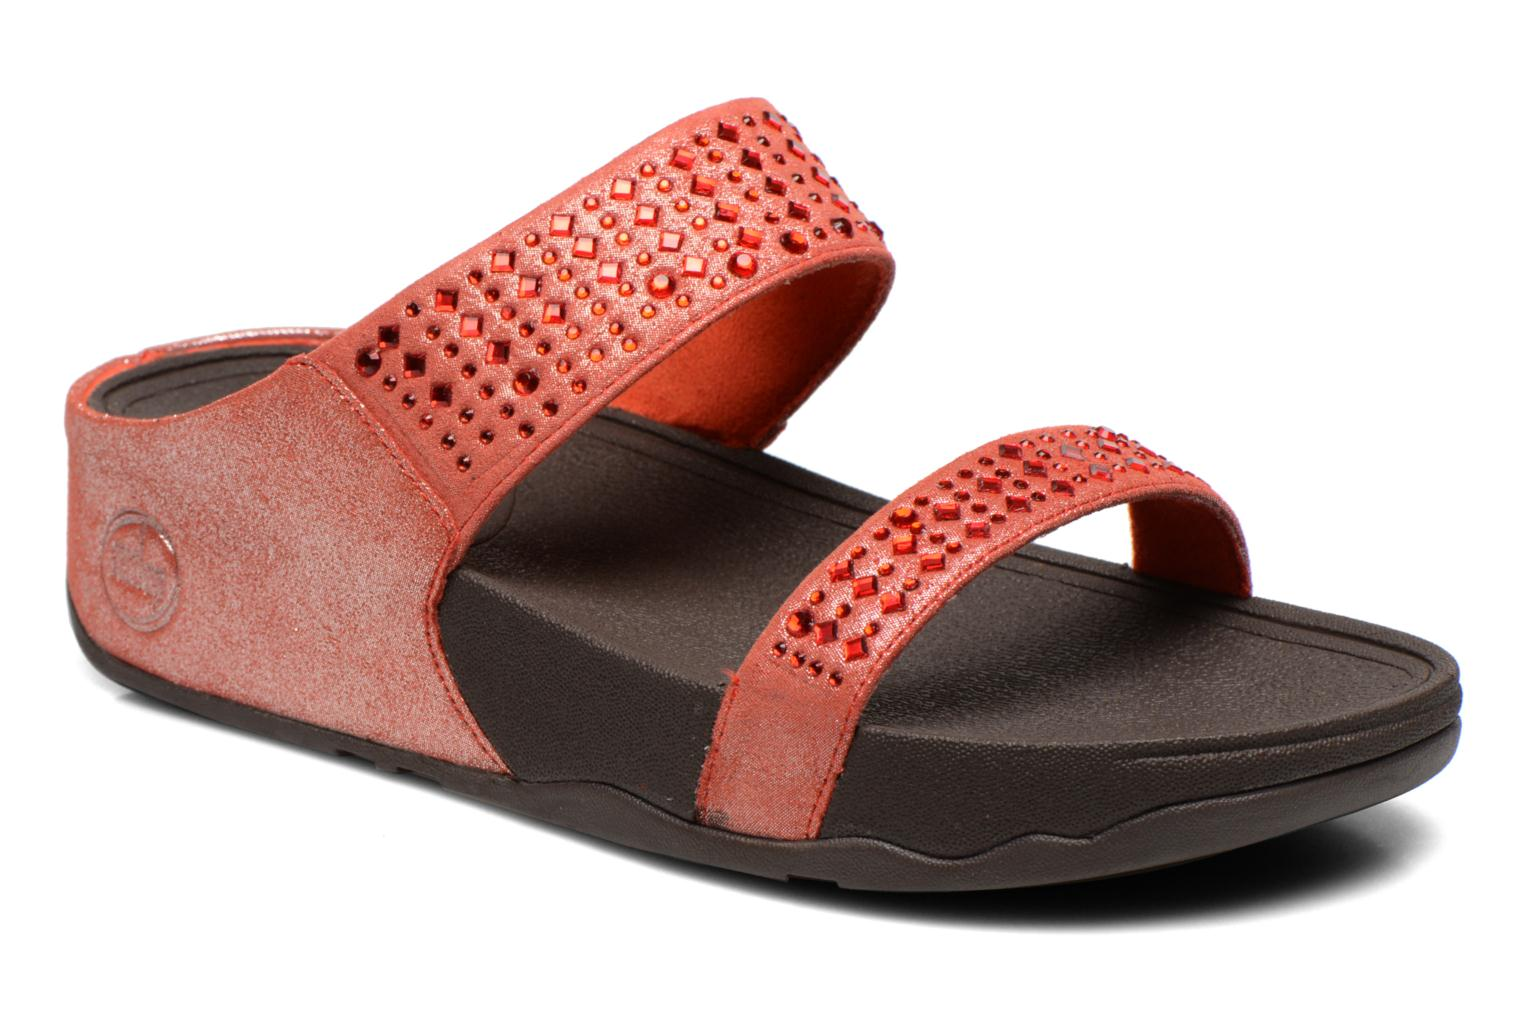 Wedges Novy Slide Suede by FitFlop